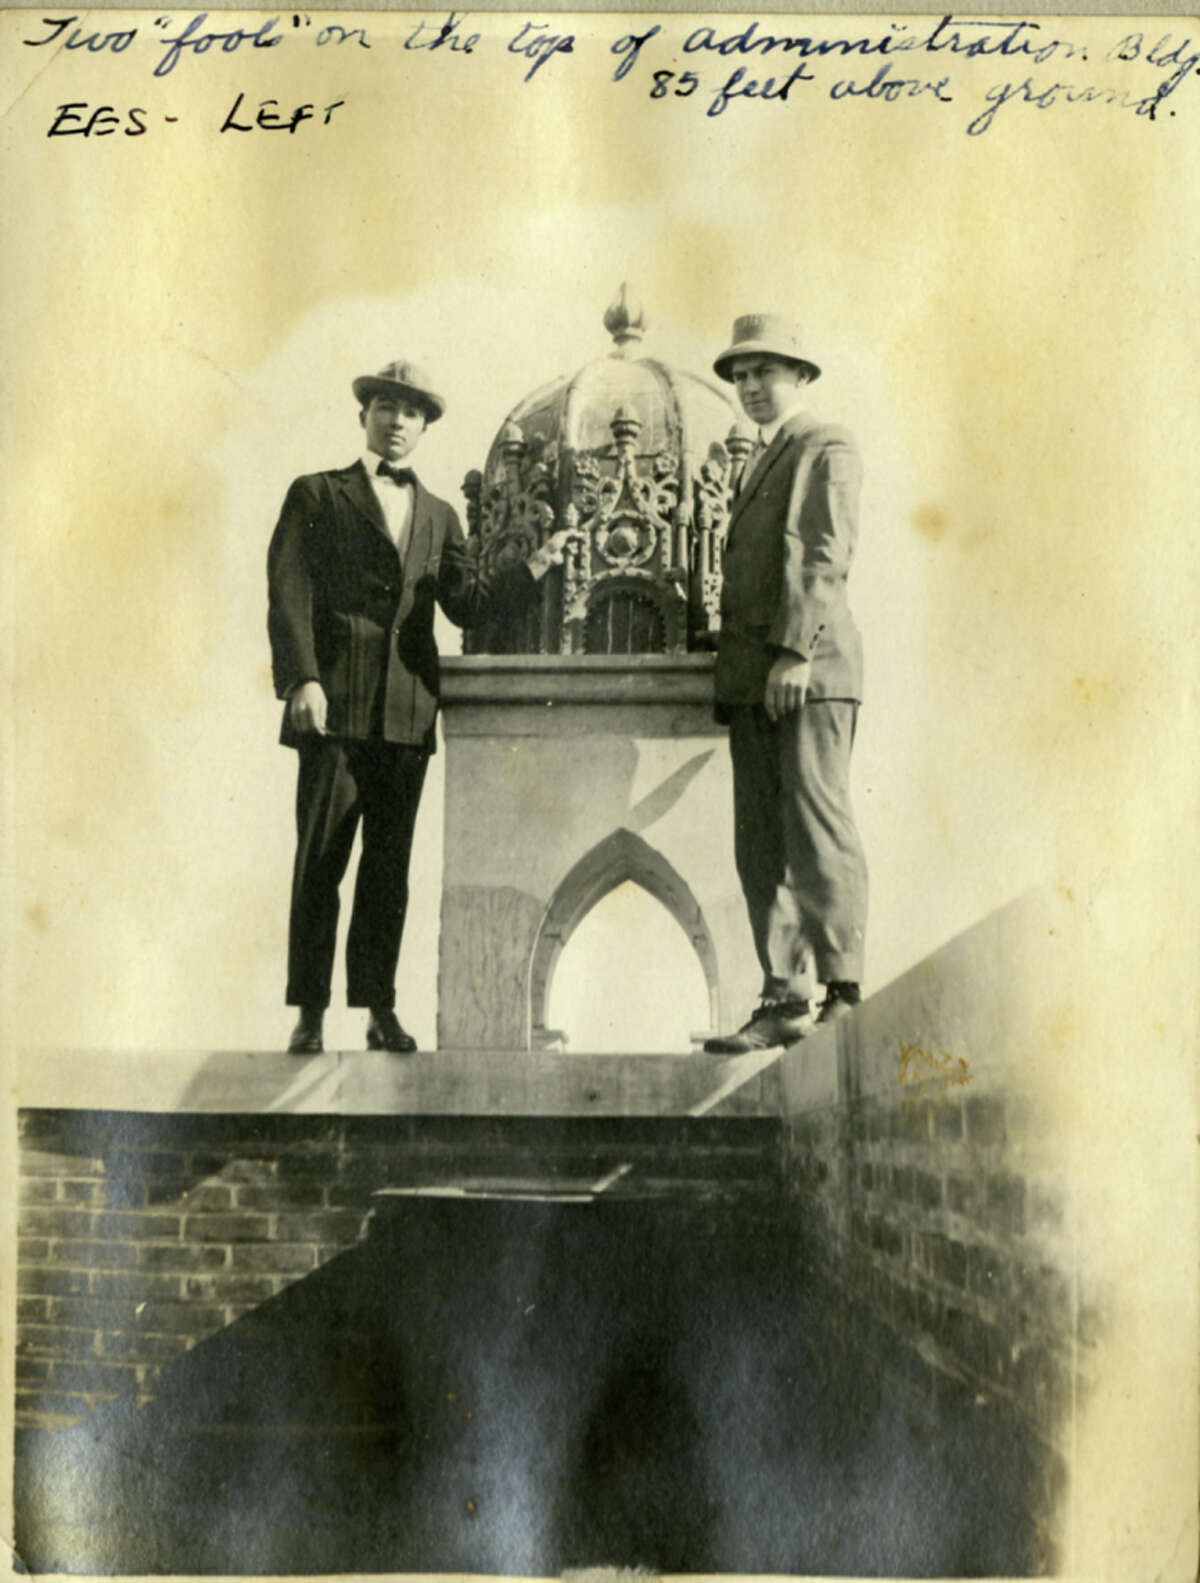 Elmer Shutts, left, is pictured with an unidentified man at the top of Rice University around 1915.